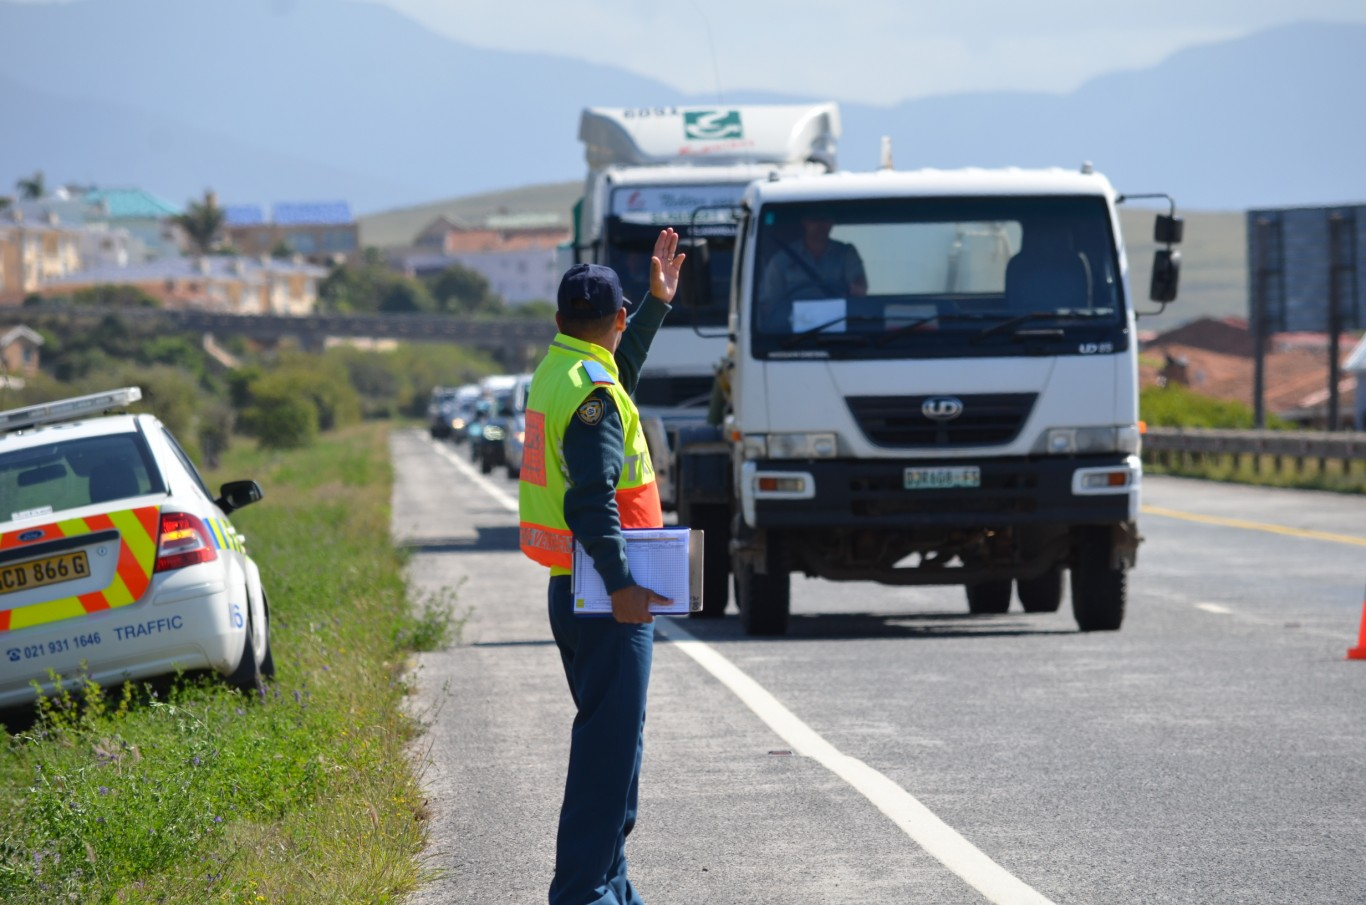 Commuters Warned of Possible Traffic Delays as Traffic Authorities Prepare to Clampdown on Lawlessness